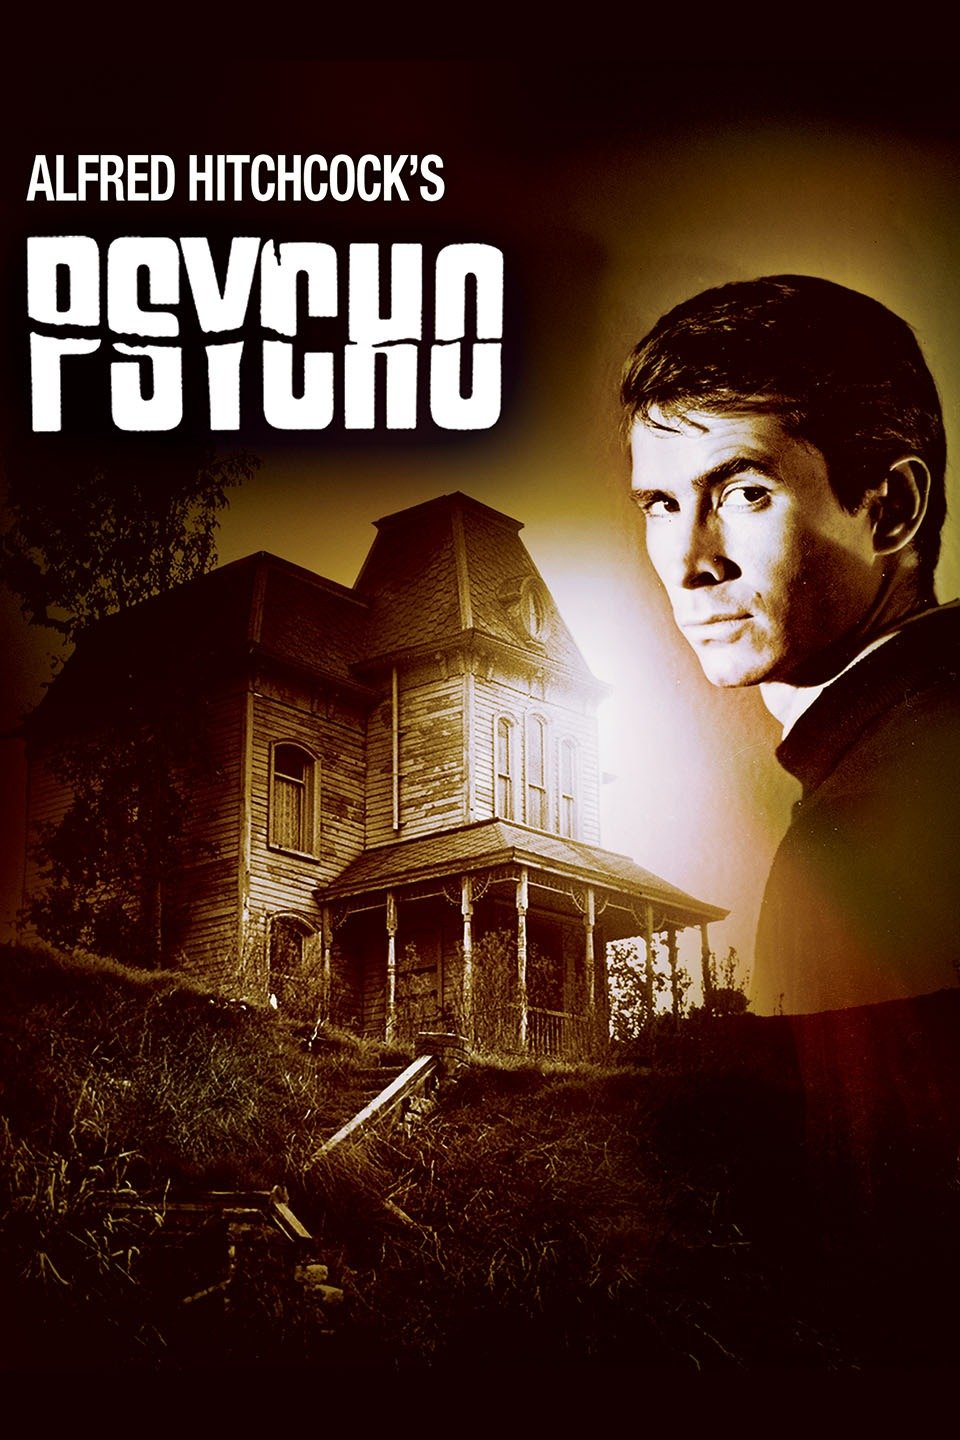 Psycho - Top 25 Horror Movies of All Time